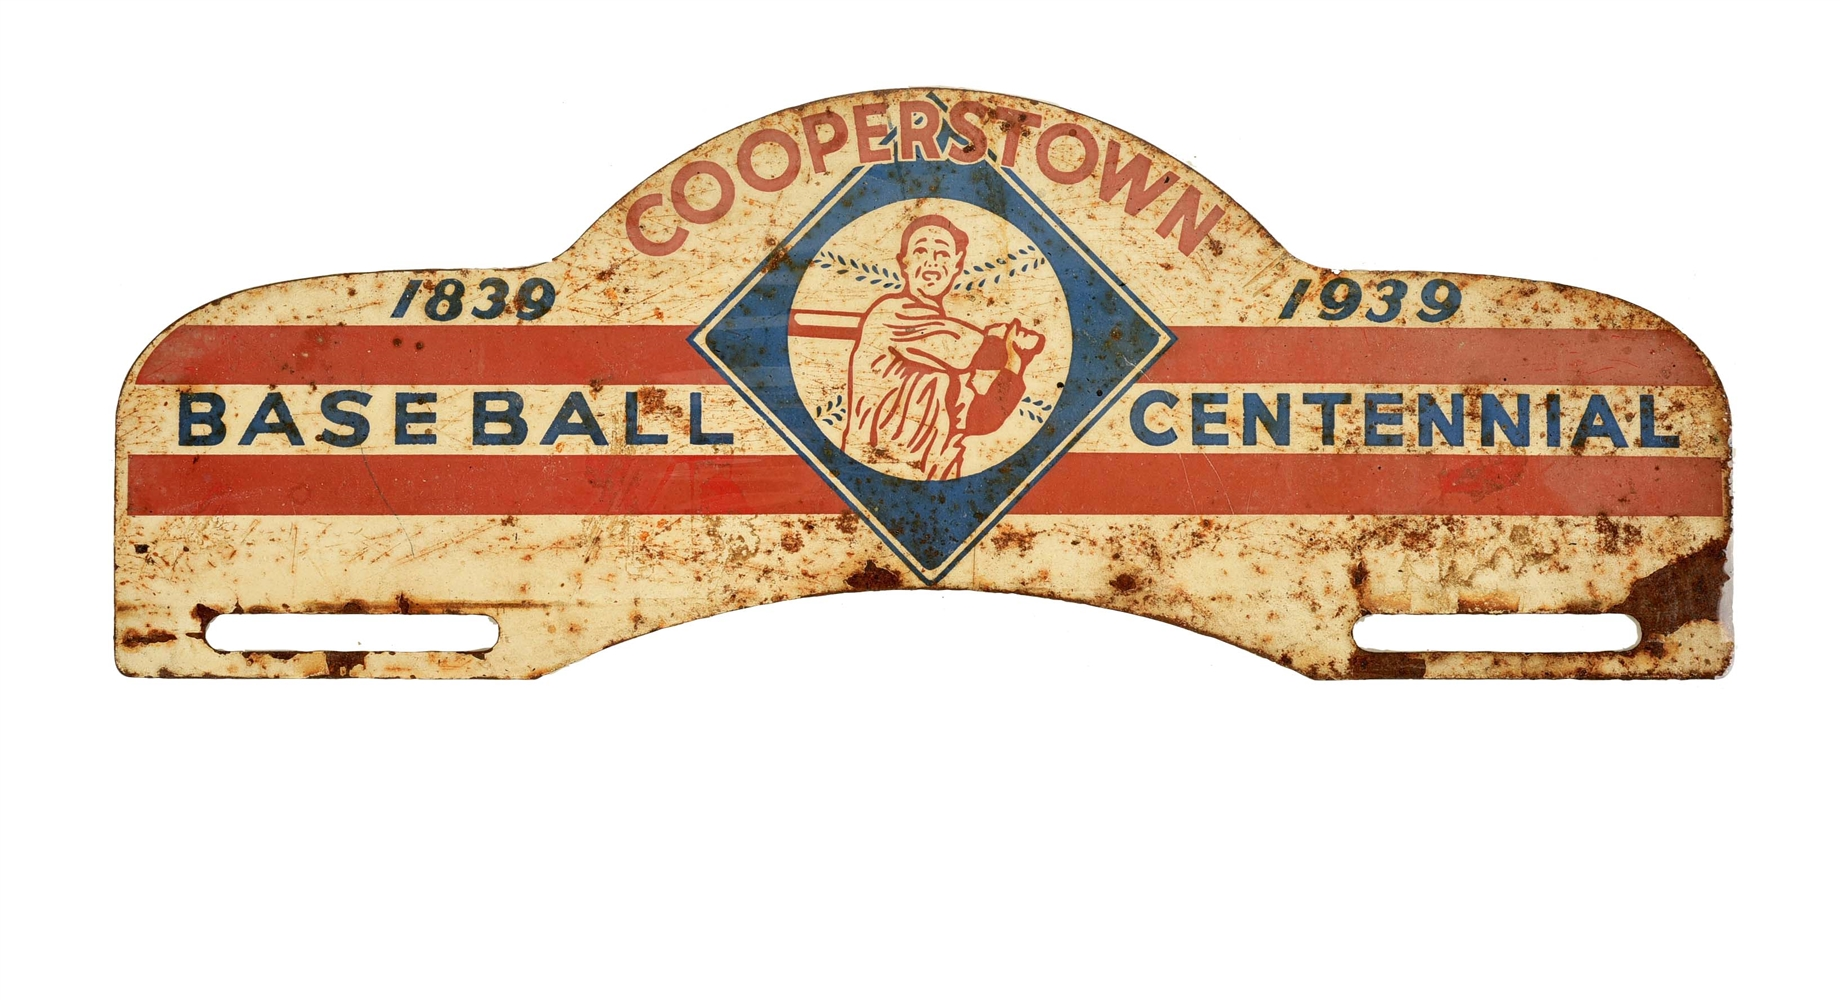 1839-1939 Cooperstown Baseball Centennial License Plate Topper.